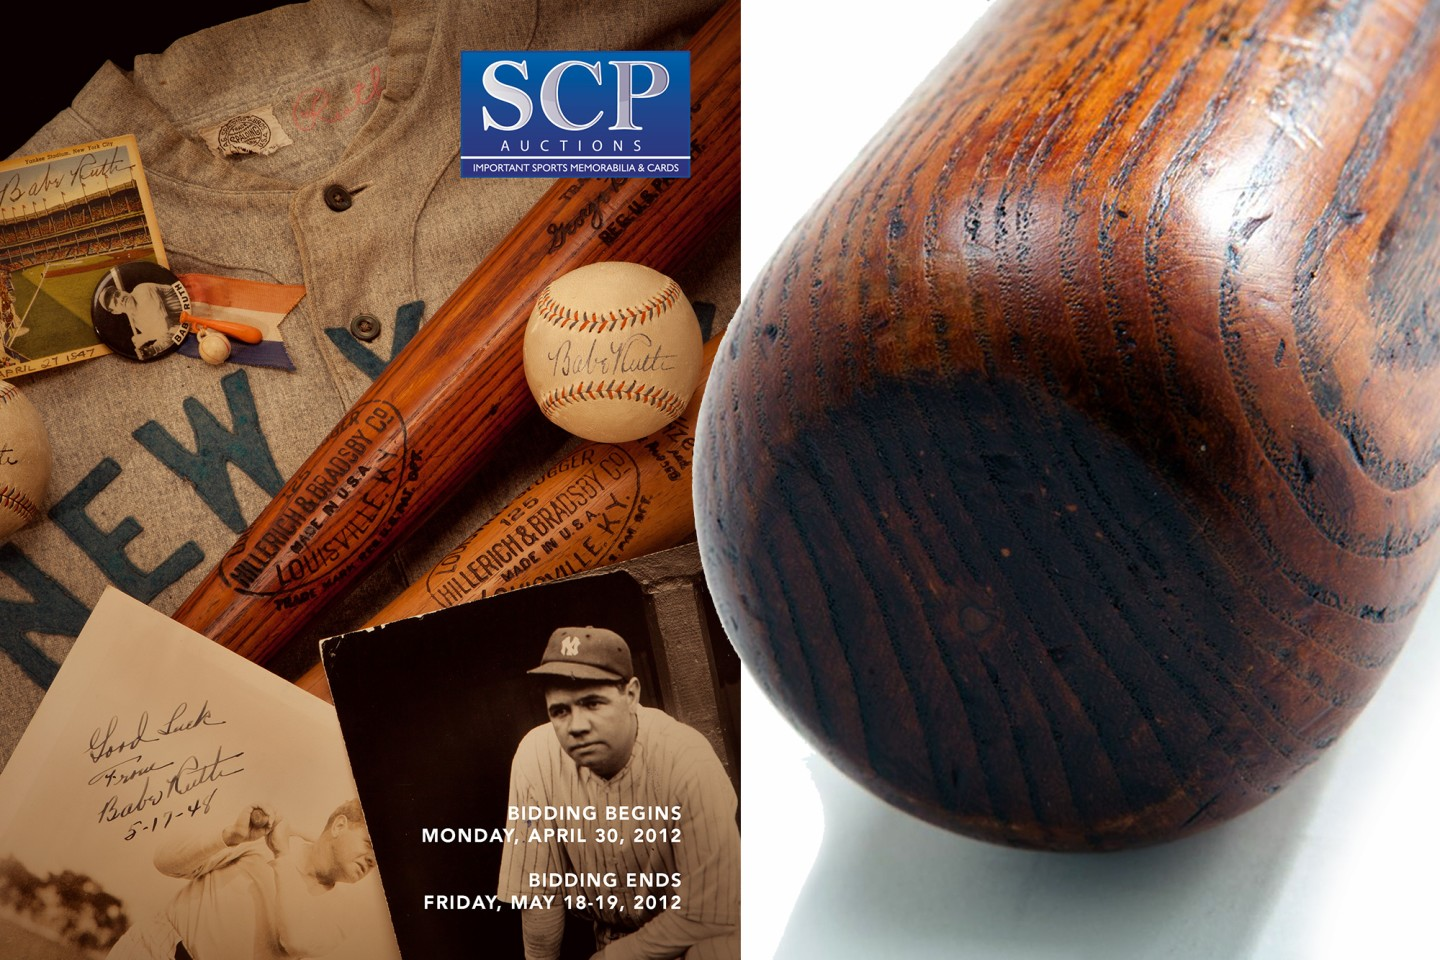 Babe Ruth 1927-28 Baseball Bat | Auction House: SCP Auctions | Price fetched: $591,007 | Auctioned: May 20, 2012